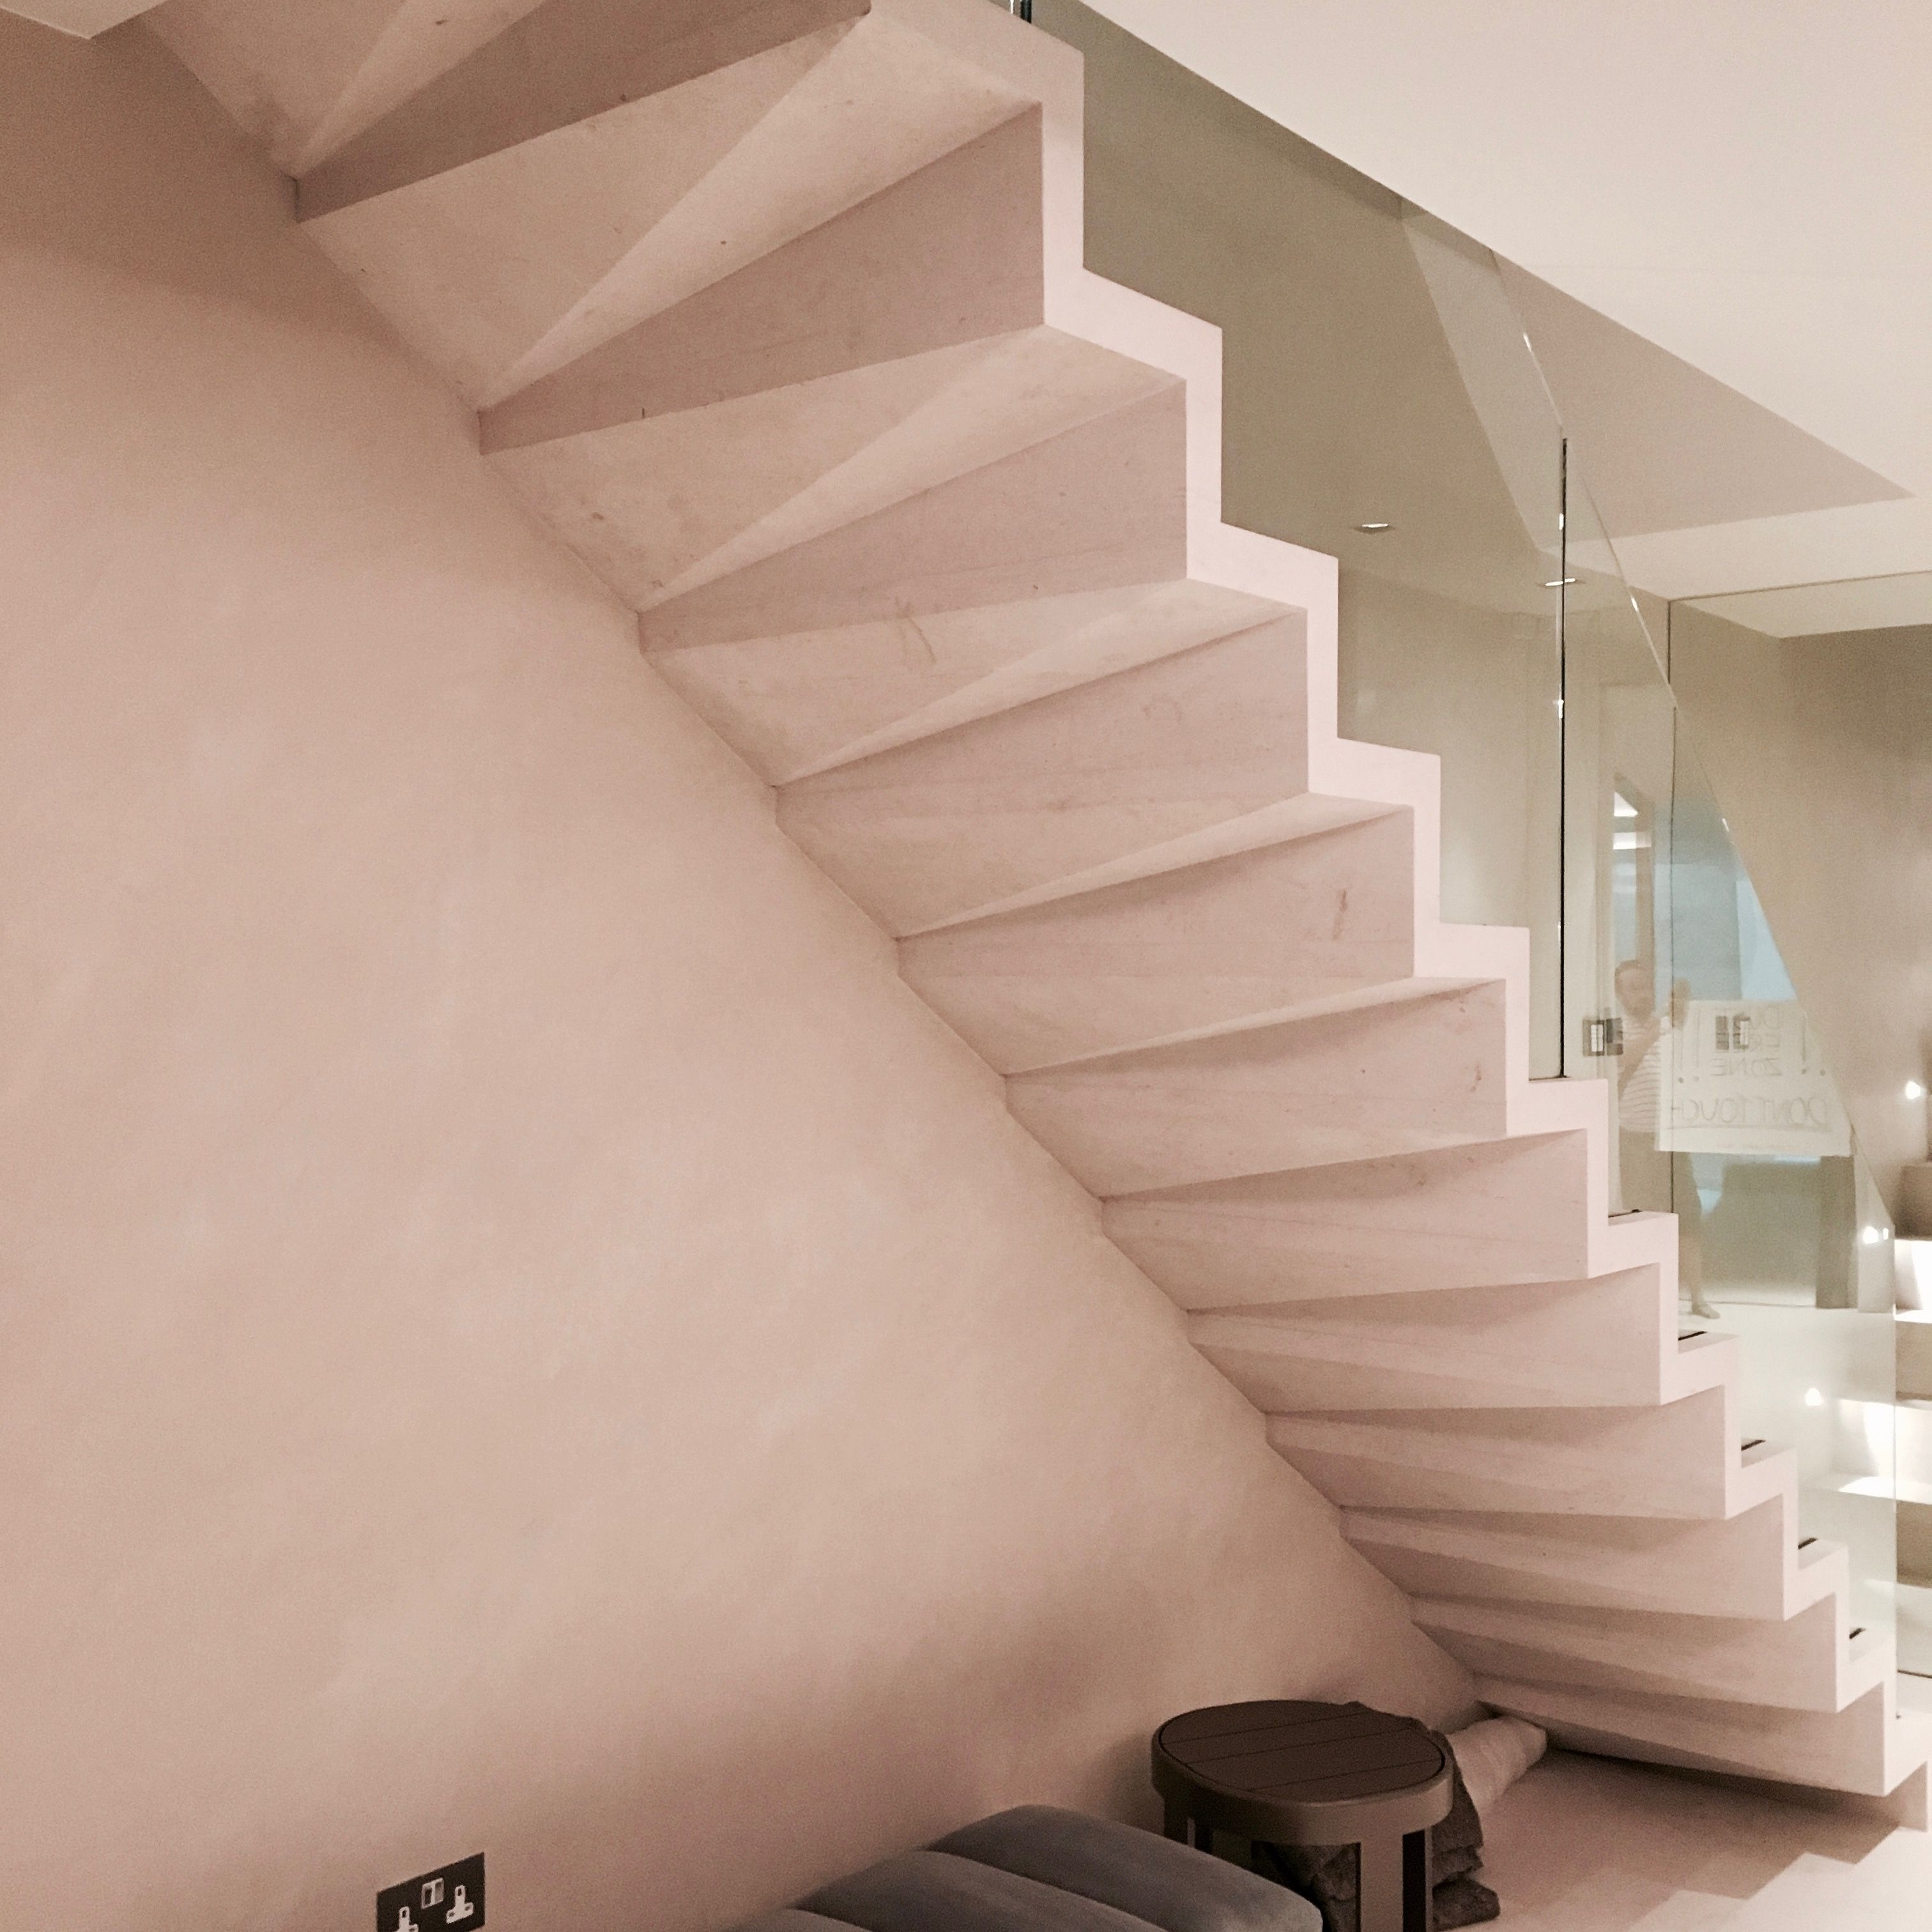 New Stone Staircase With Folded Underside By